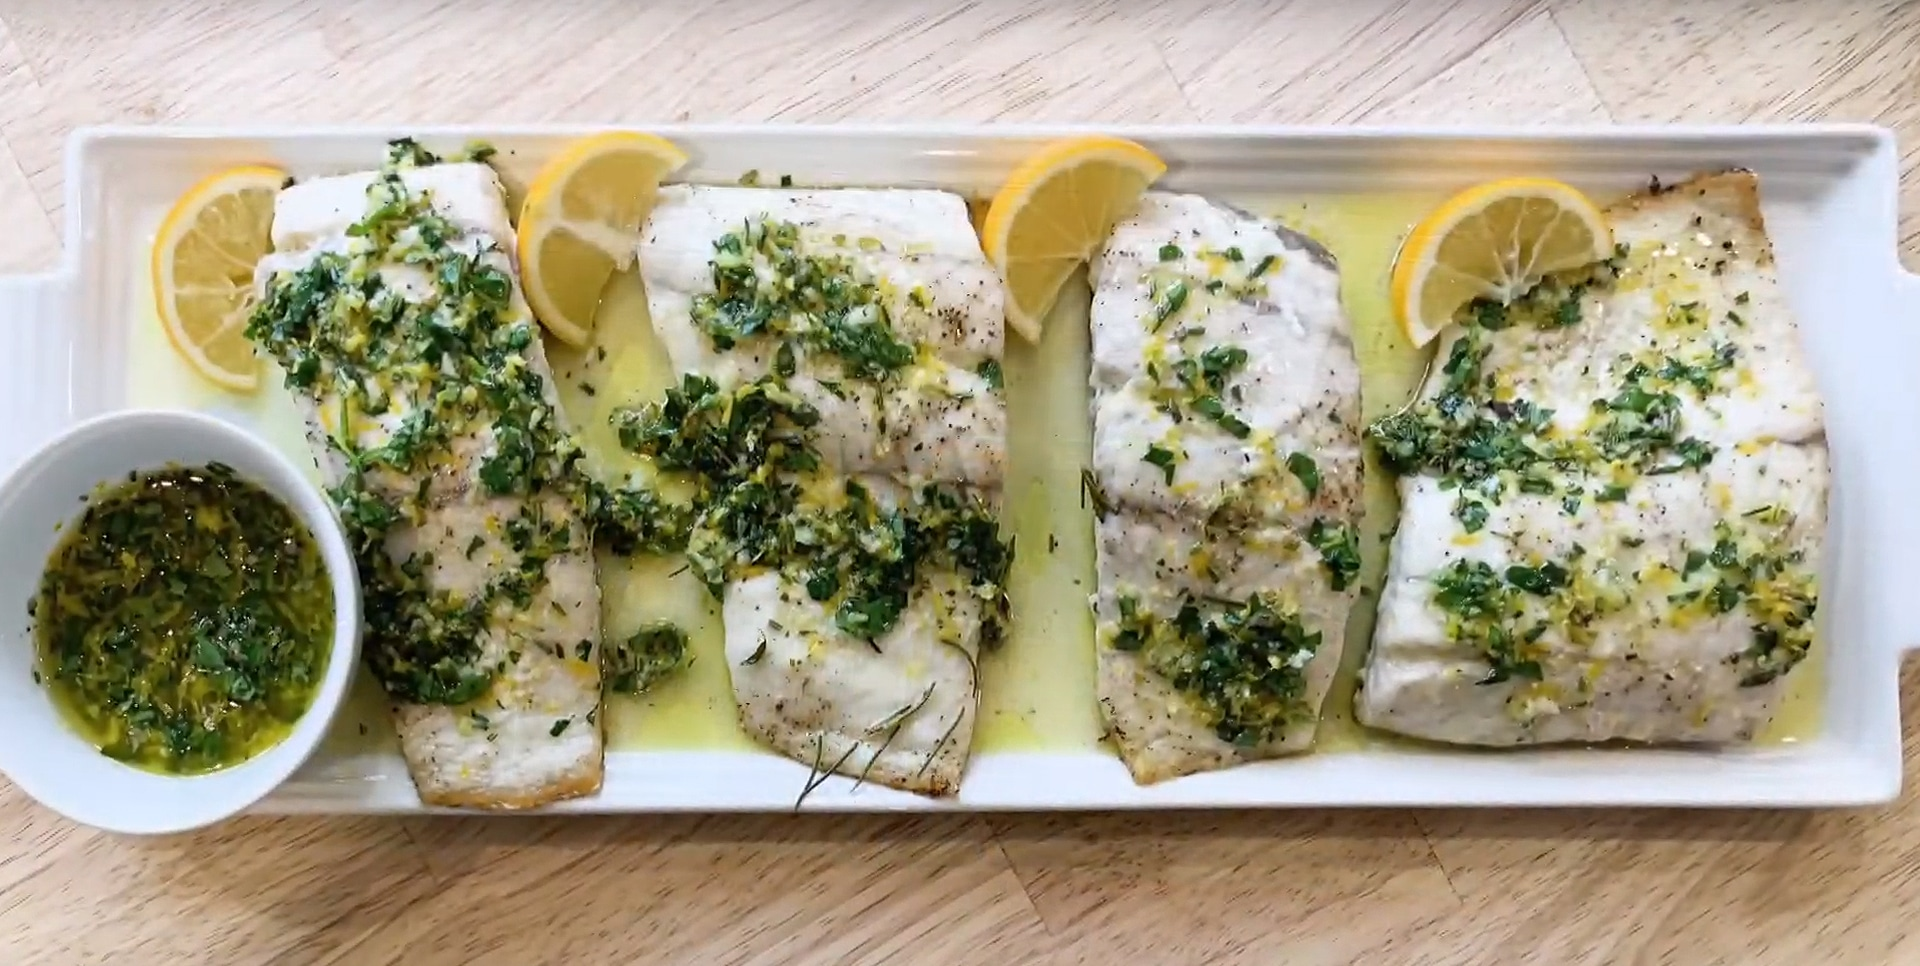 Barramundi with Meyer Lemon Vinaigrette